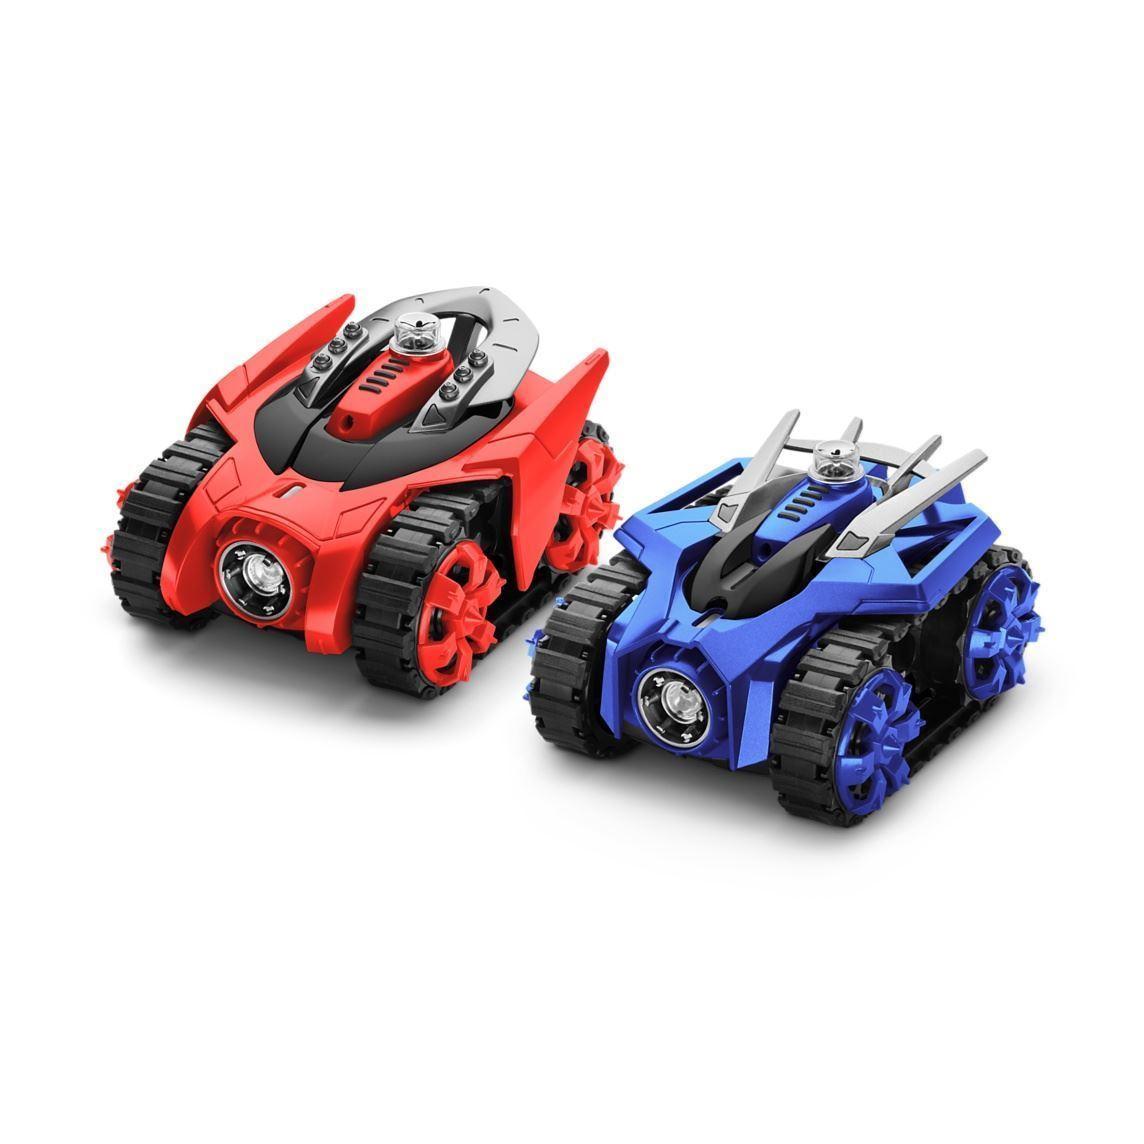 Picture of SMARTX Galaxy ZEGA Battle Toy Starter Kit